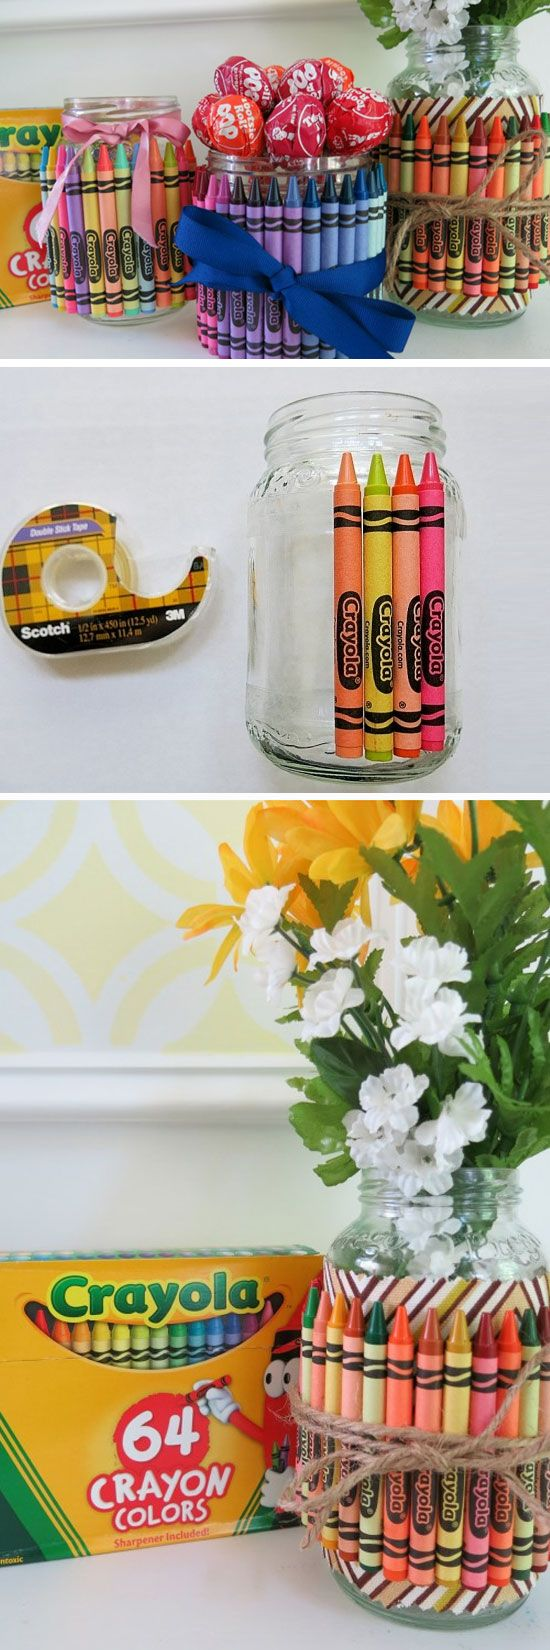 Crayon Container | Click Pic for 23 DIY Christmas Gifts for Teachers From Kids | DIY Teacher Appreciation Gifts from Students